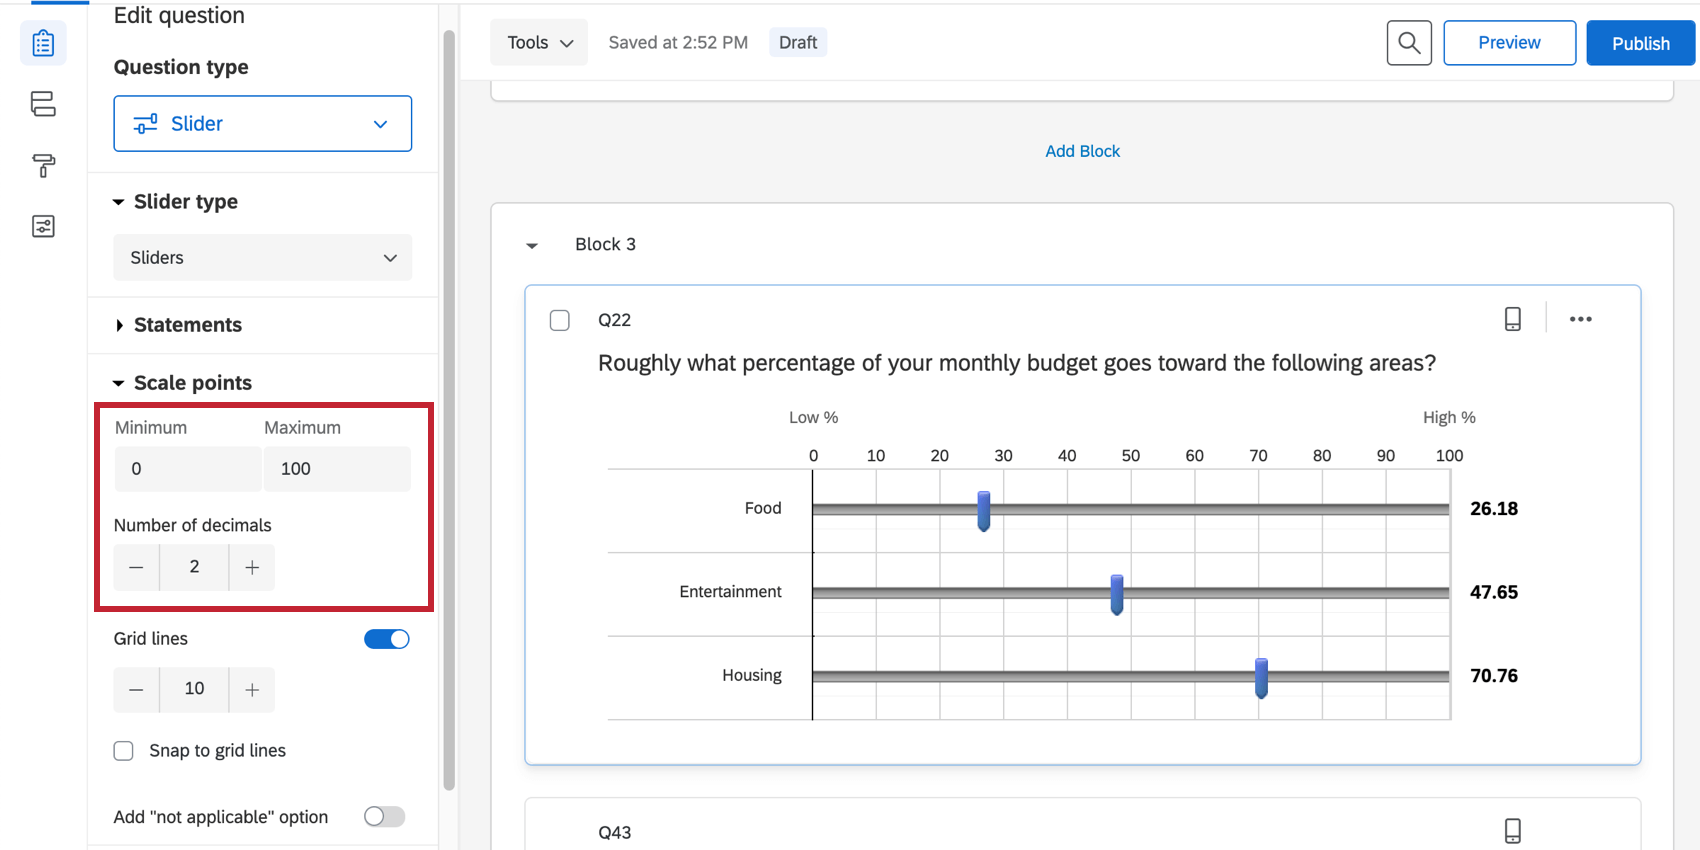 Min, max, and grid lines settings in the question editing pane